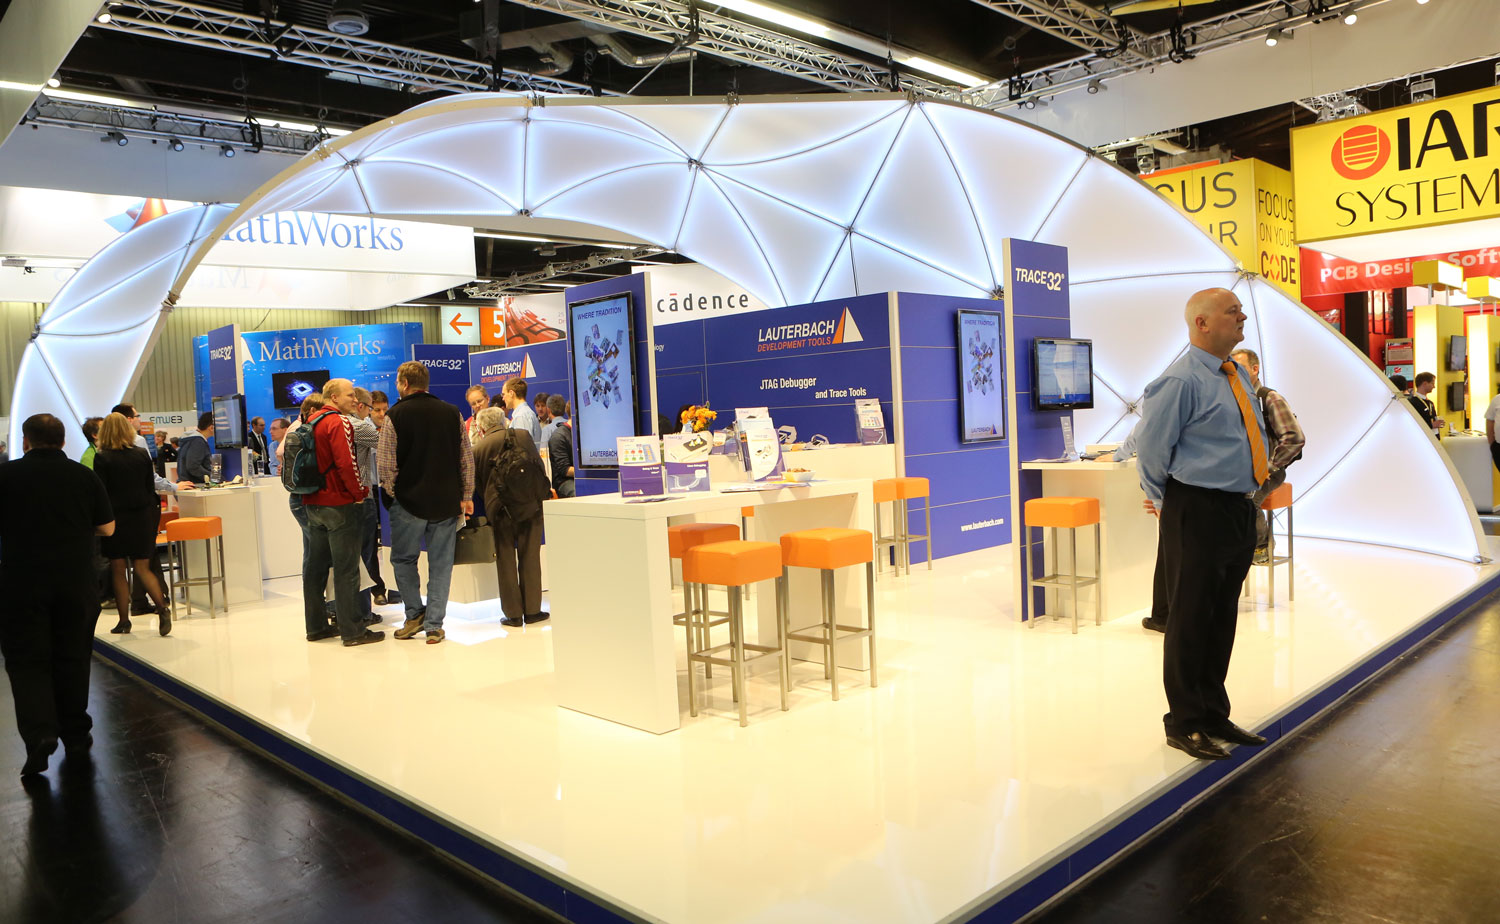 Nuremberg Exhibition Design At Embedded World